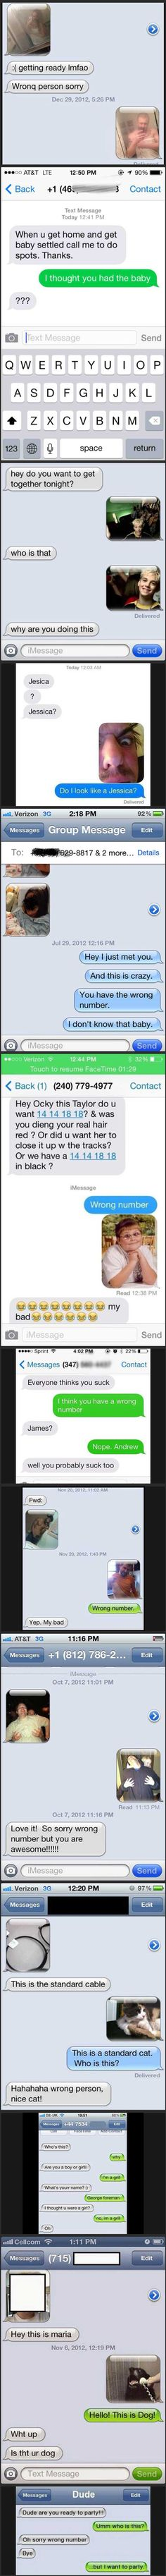 "Some great responses to ""wrong number"" text messages. I seriously laughed way too hard at some of these!"